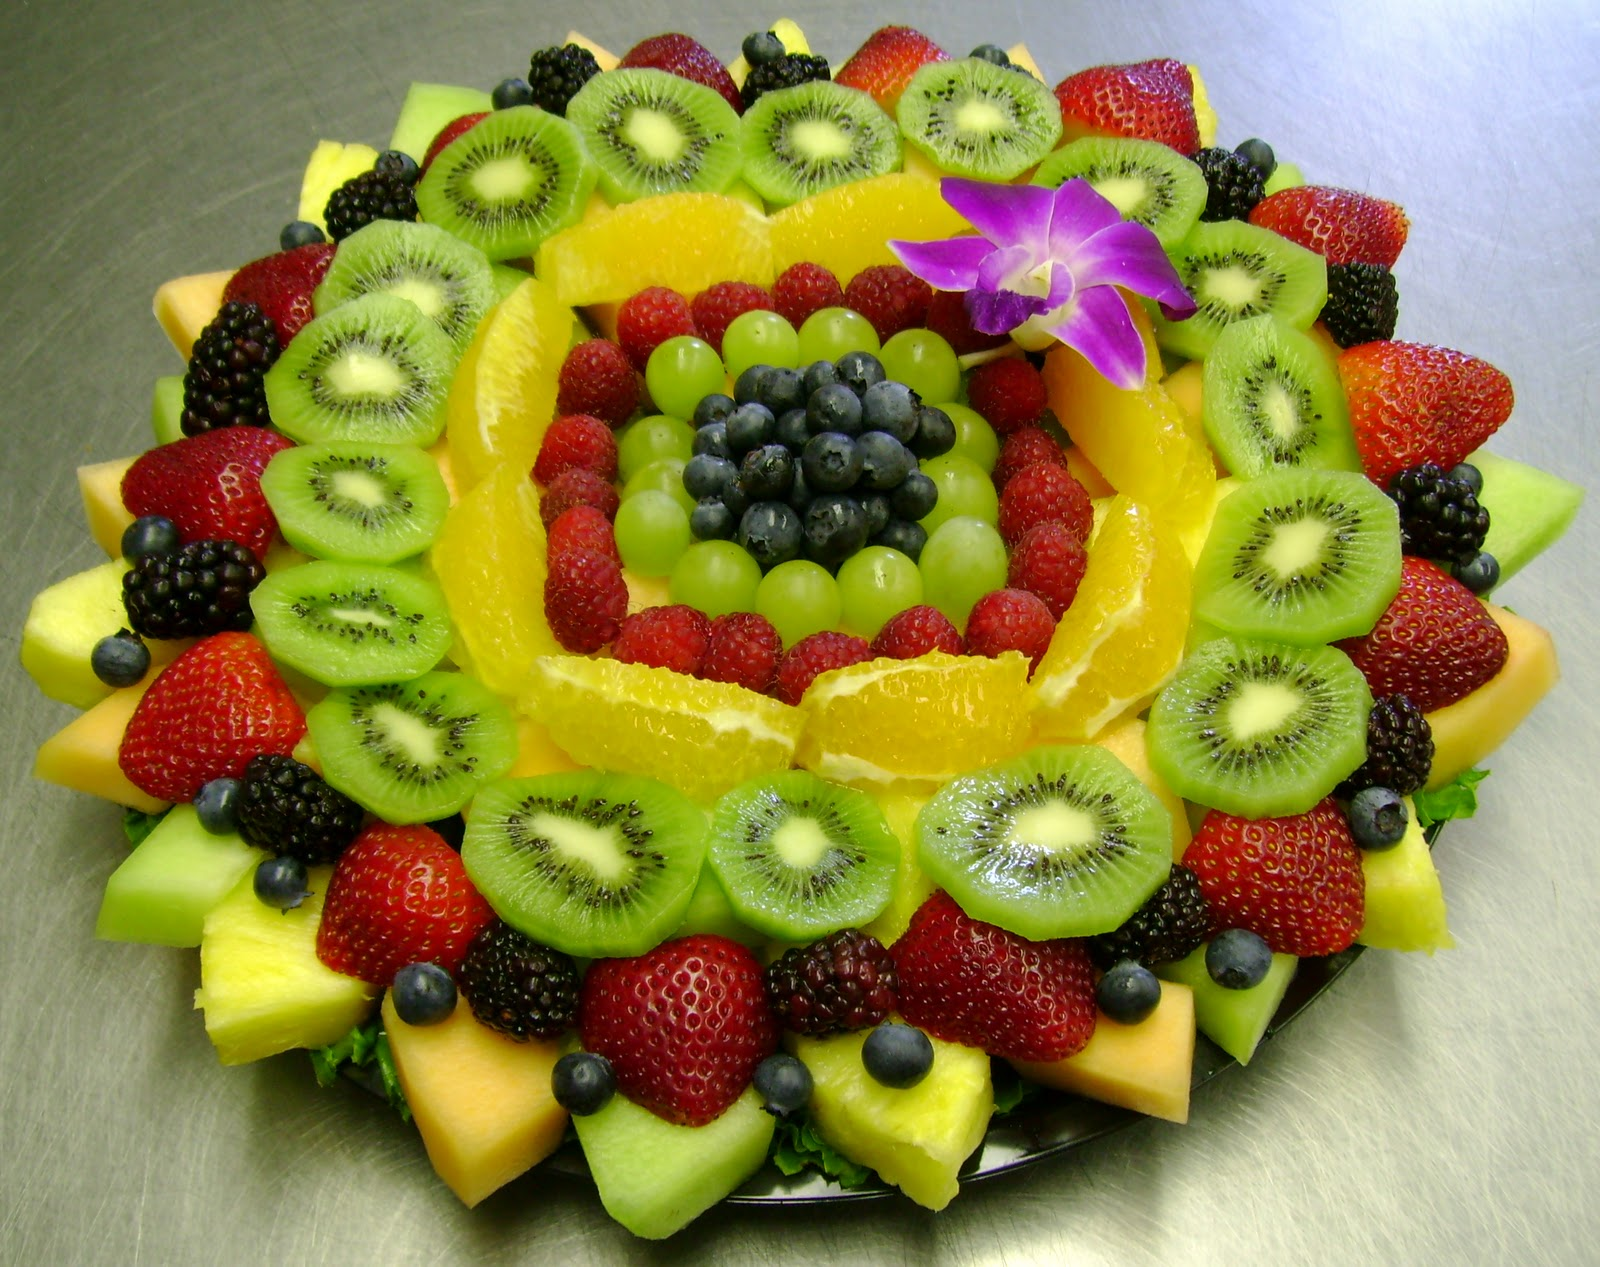 Critter sitter 39 s blog november 2011 for Decoration fruit